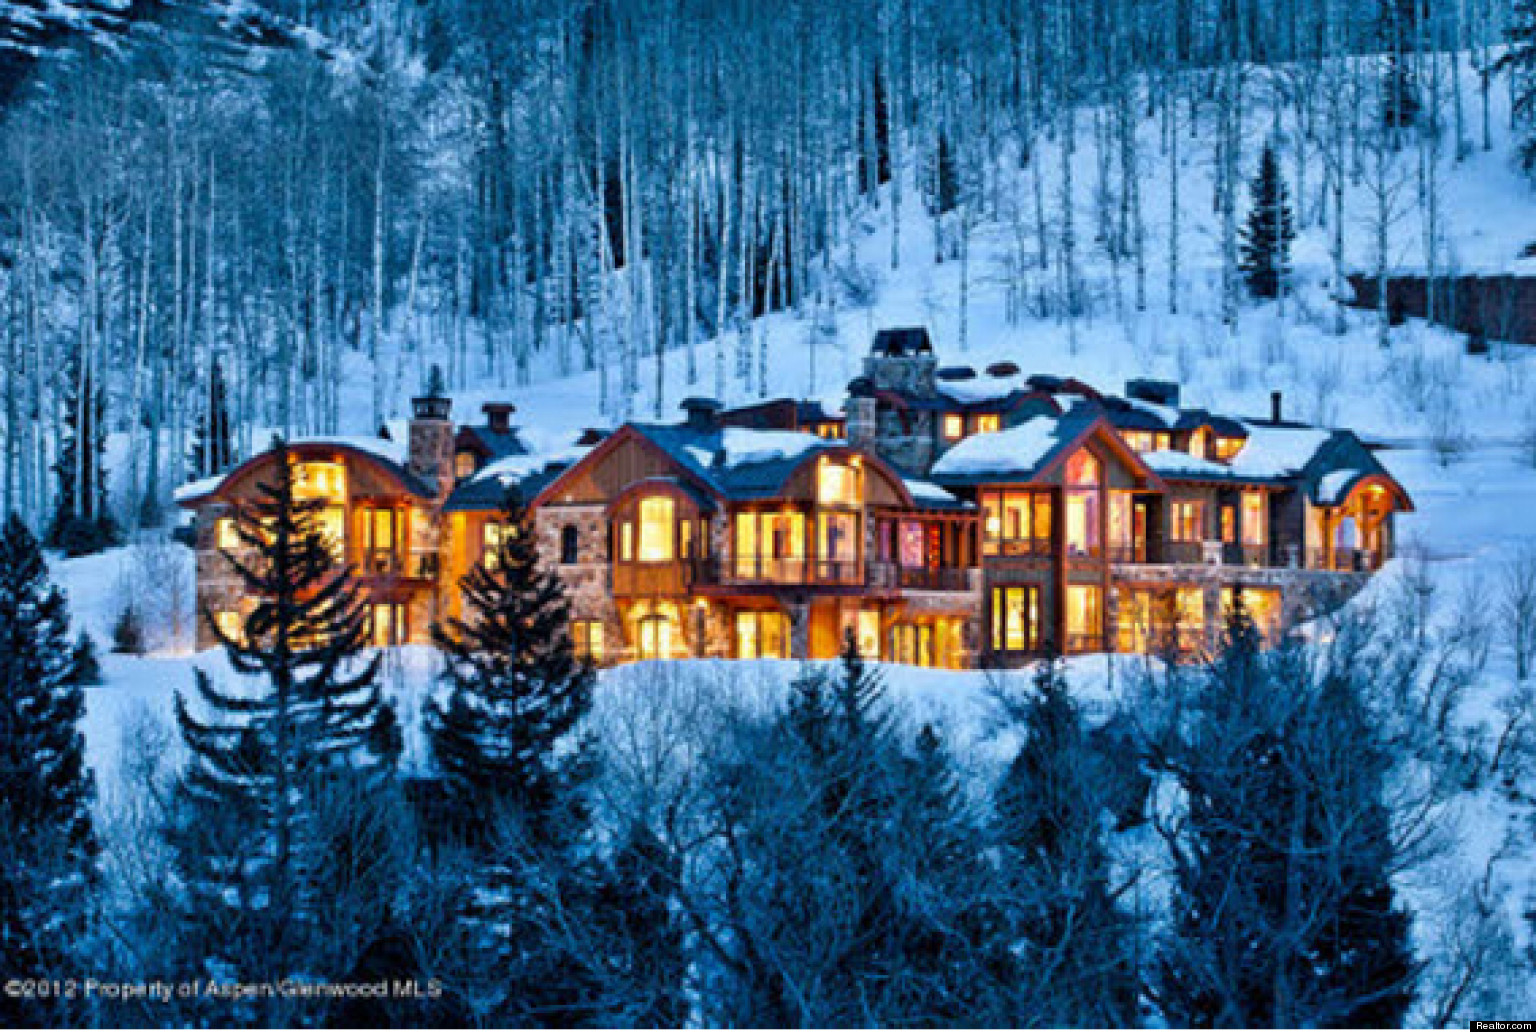 Top 10 most expensive homes in colorado in 2012 according for Top ten home builders